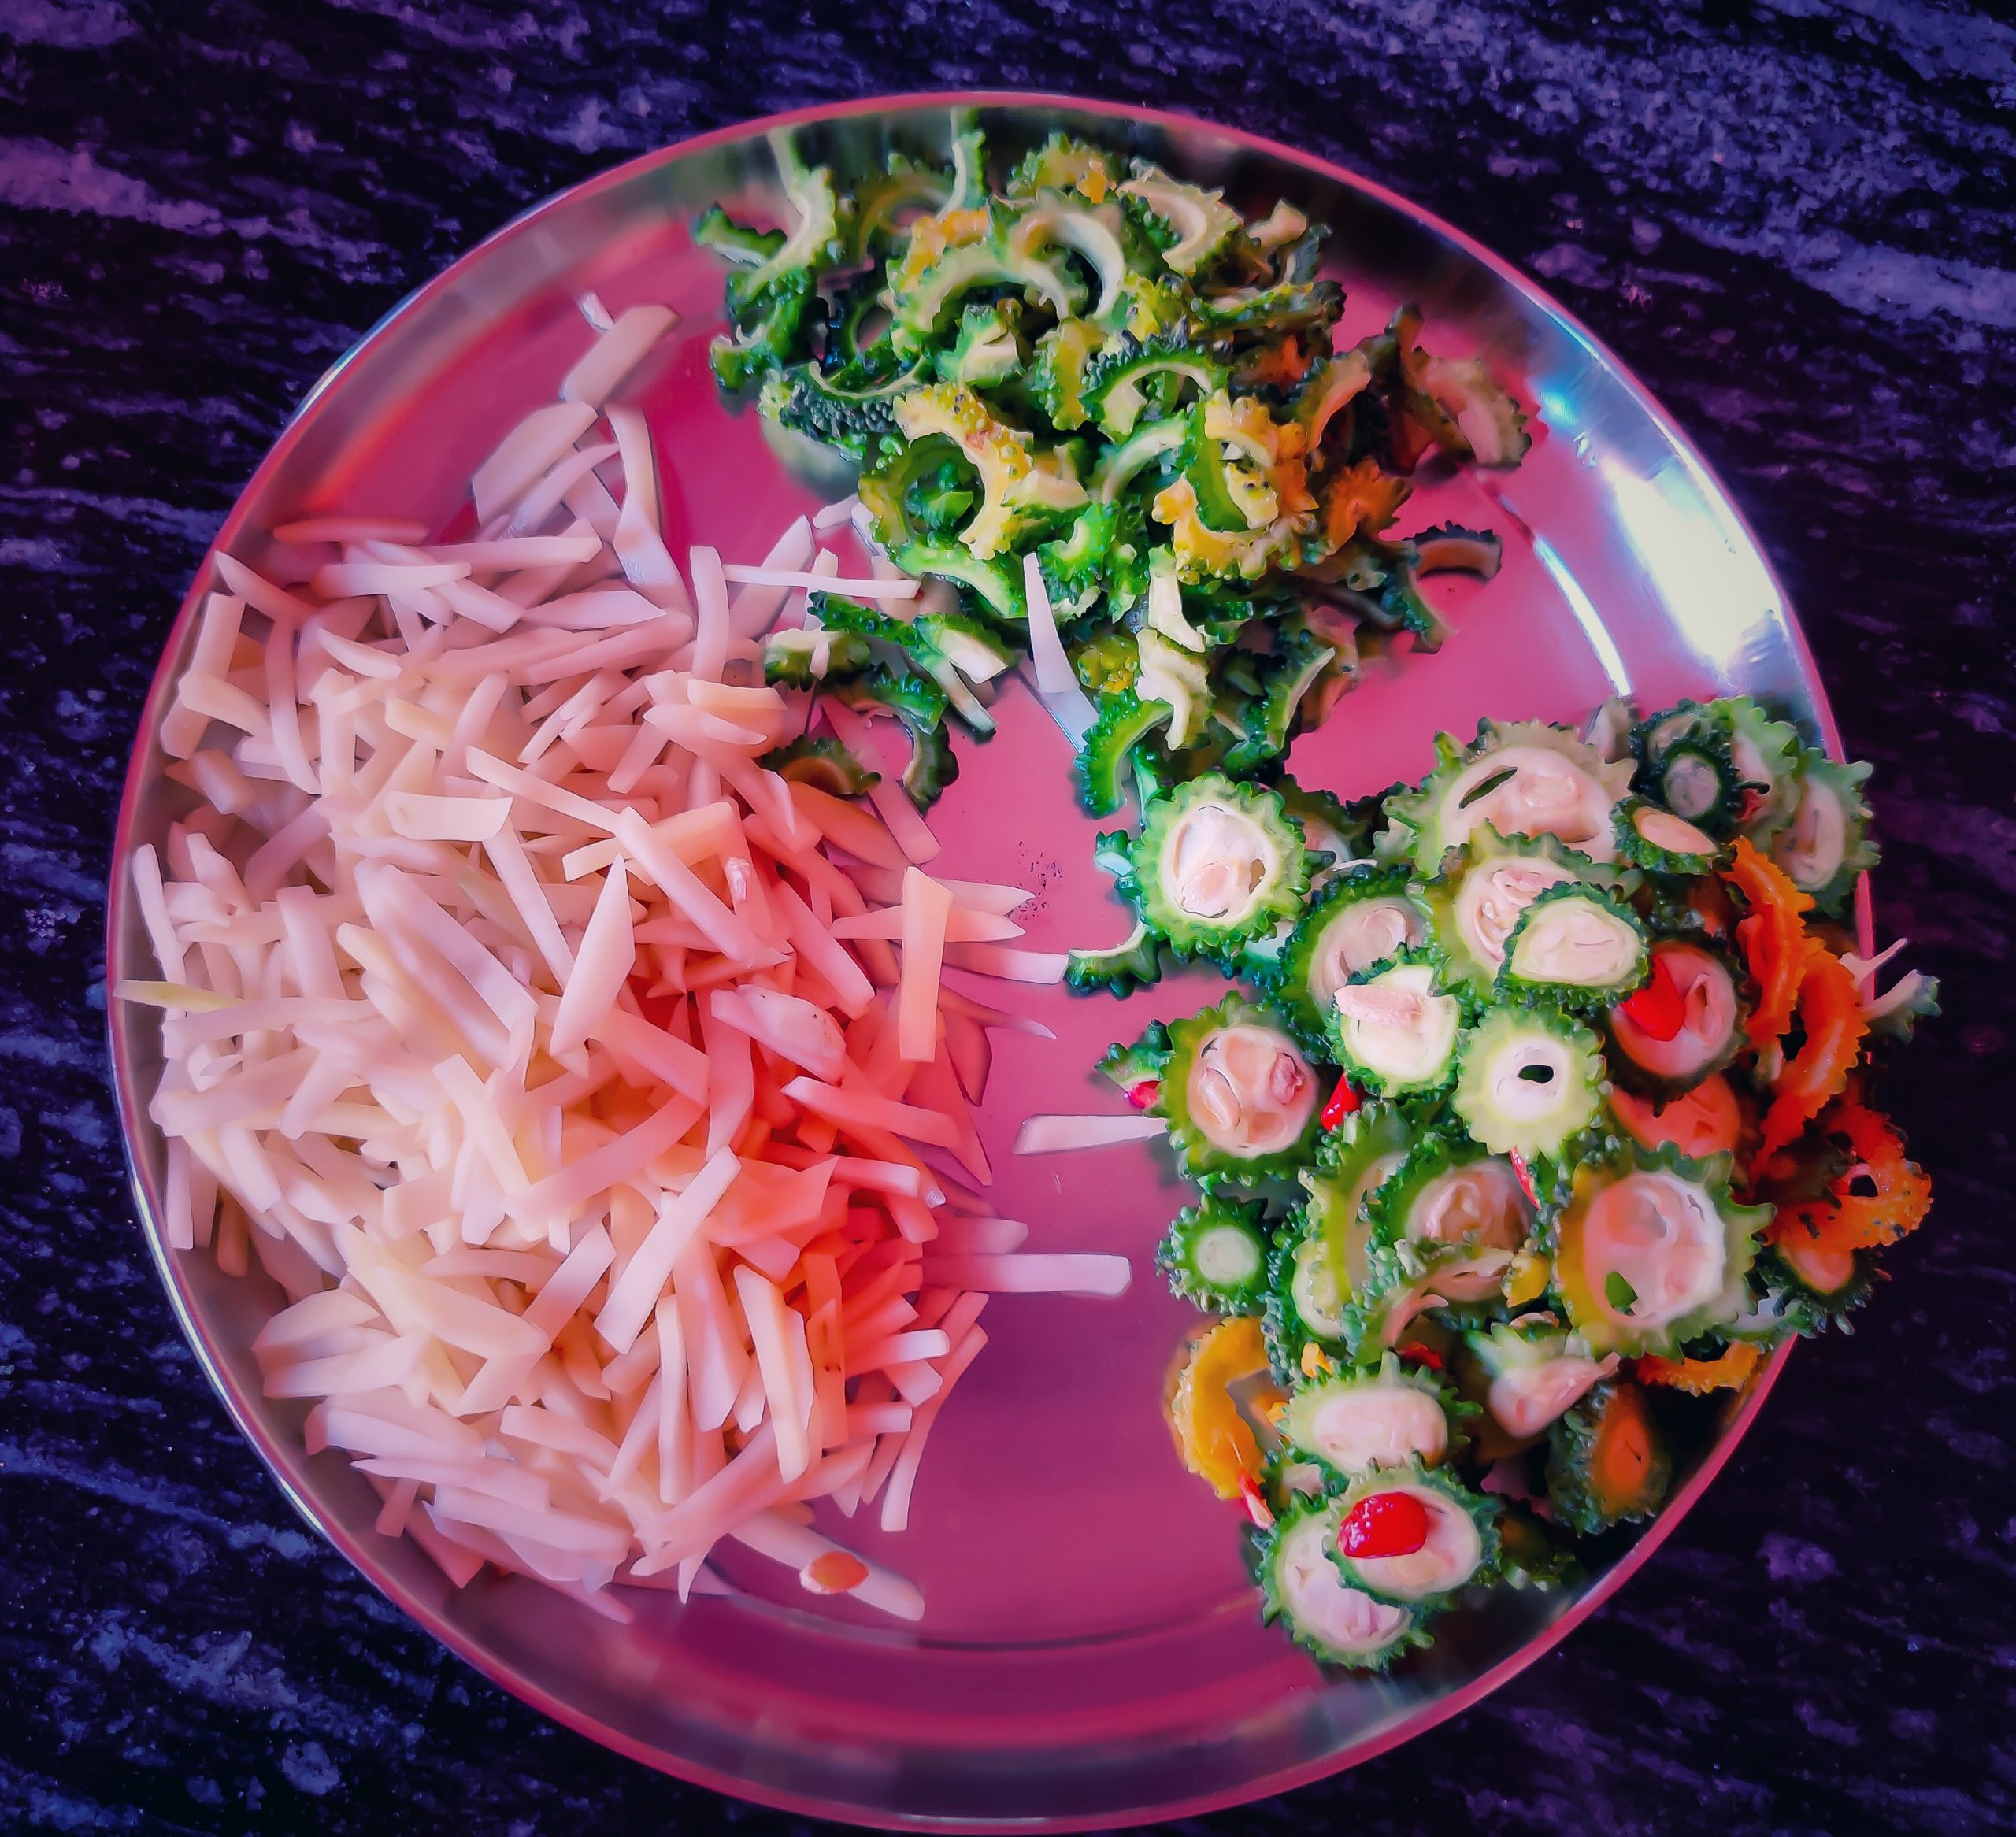 Sliced vegetables in a plate